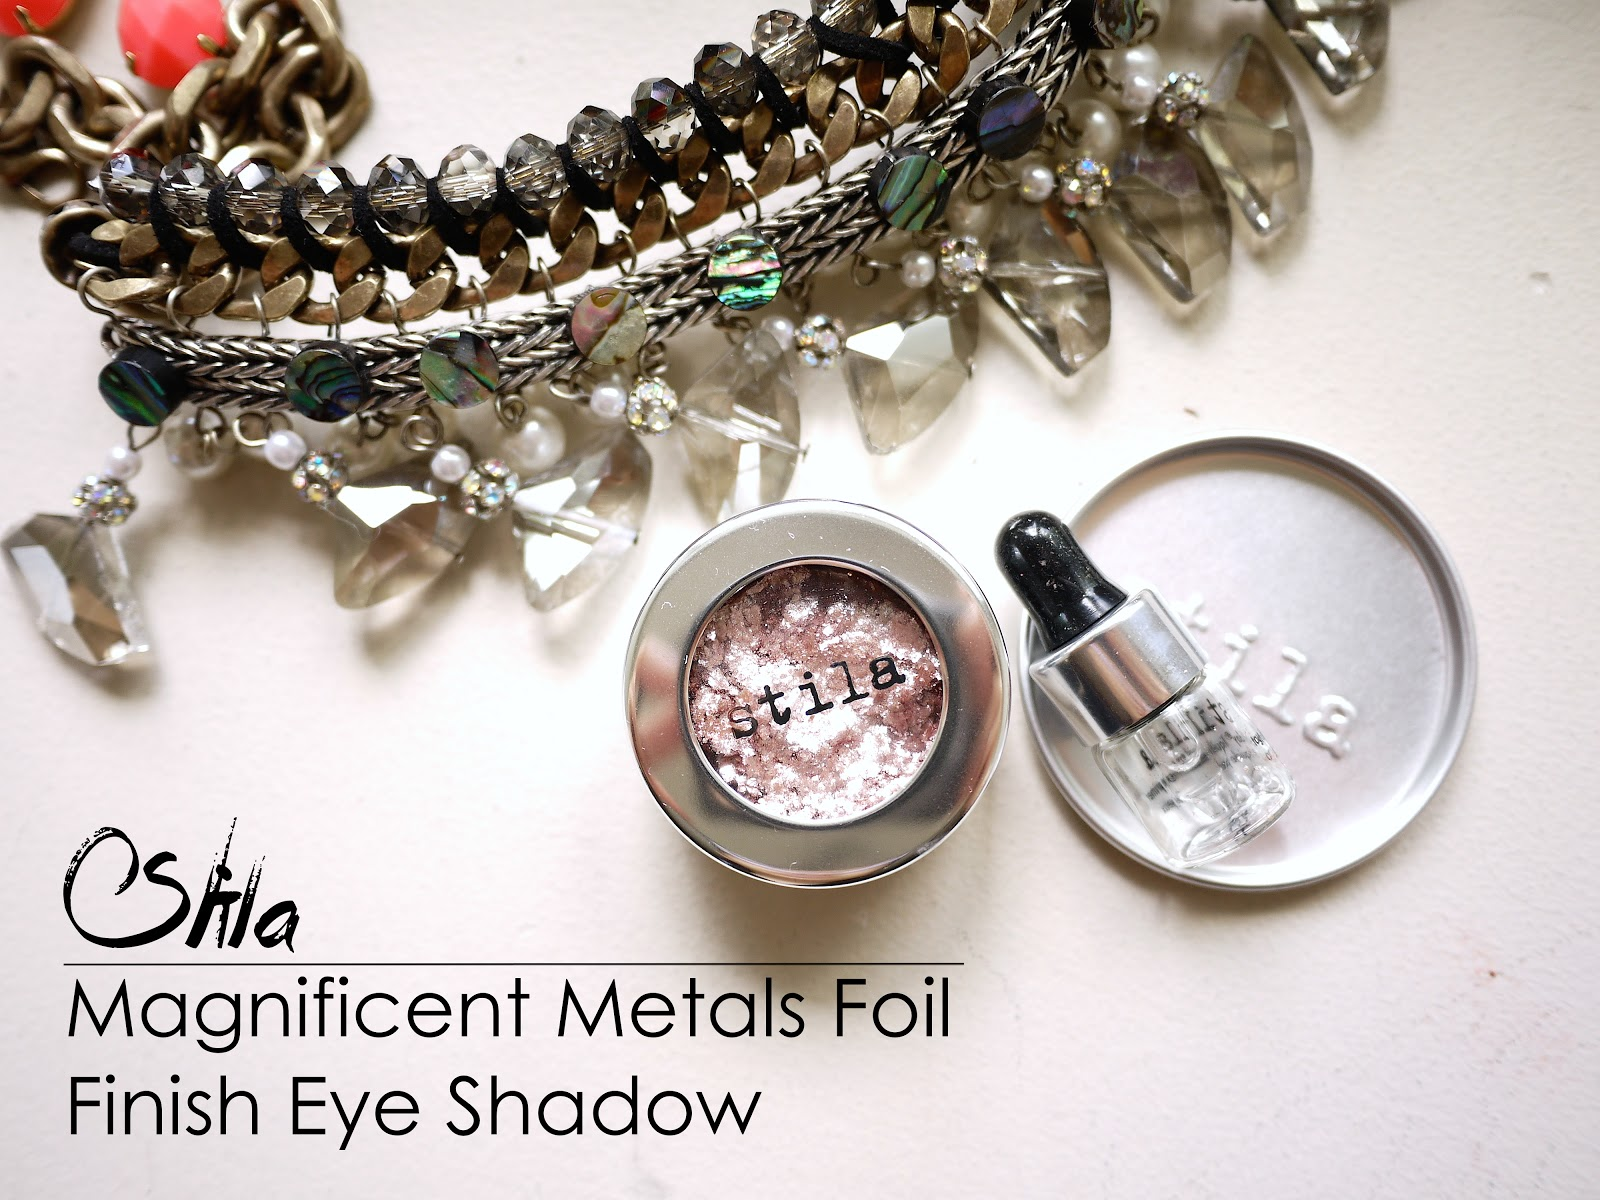 Stila Magnificent Metals Foil Finish Eye Shadow Metallic Dusty Rose swatch review